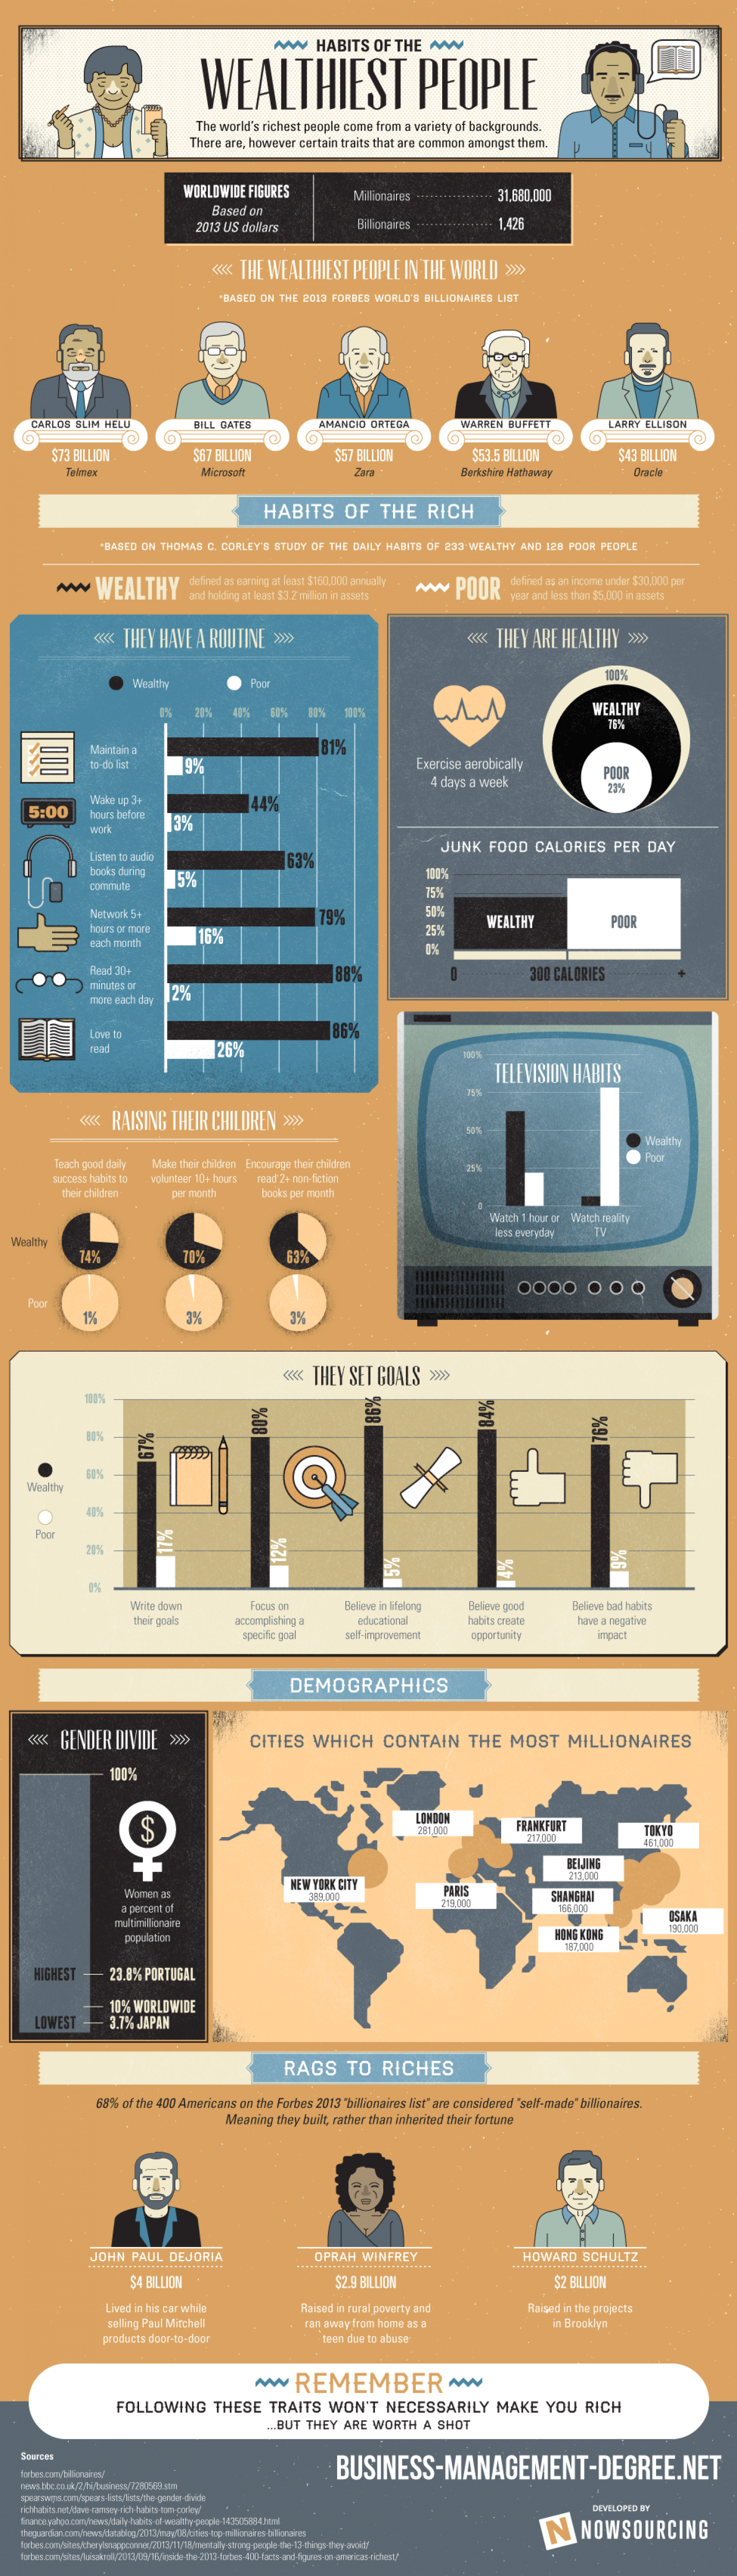 Habits of the World's Wealthiest People Infographic